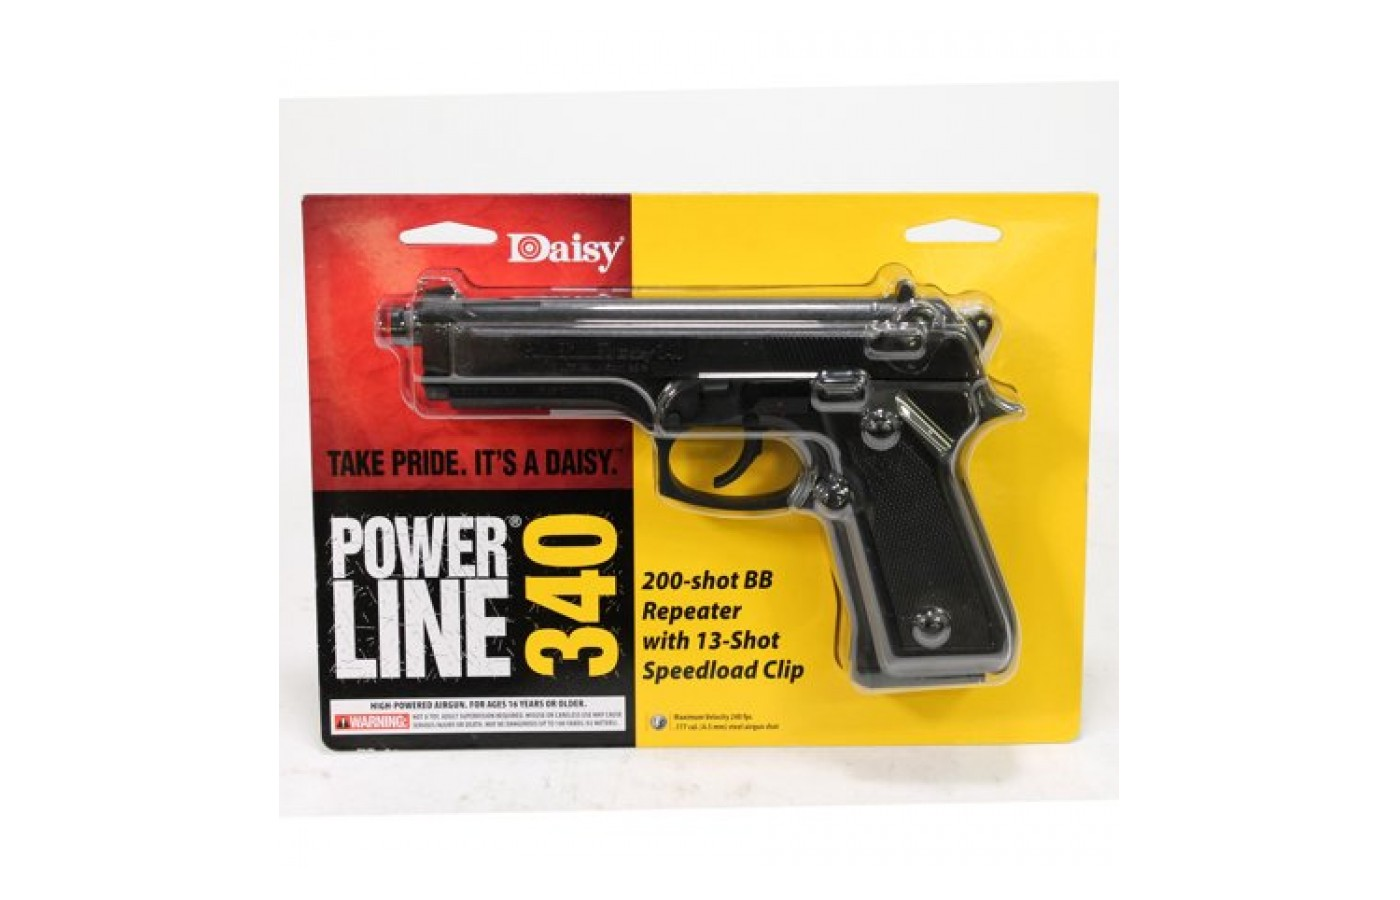 The Daisy Powerline 340 is low priced.